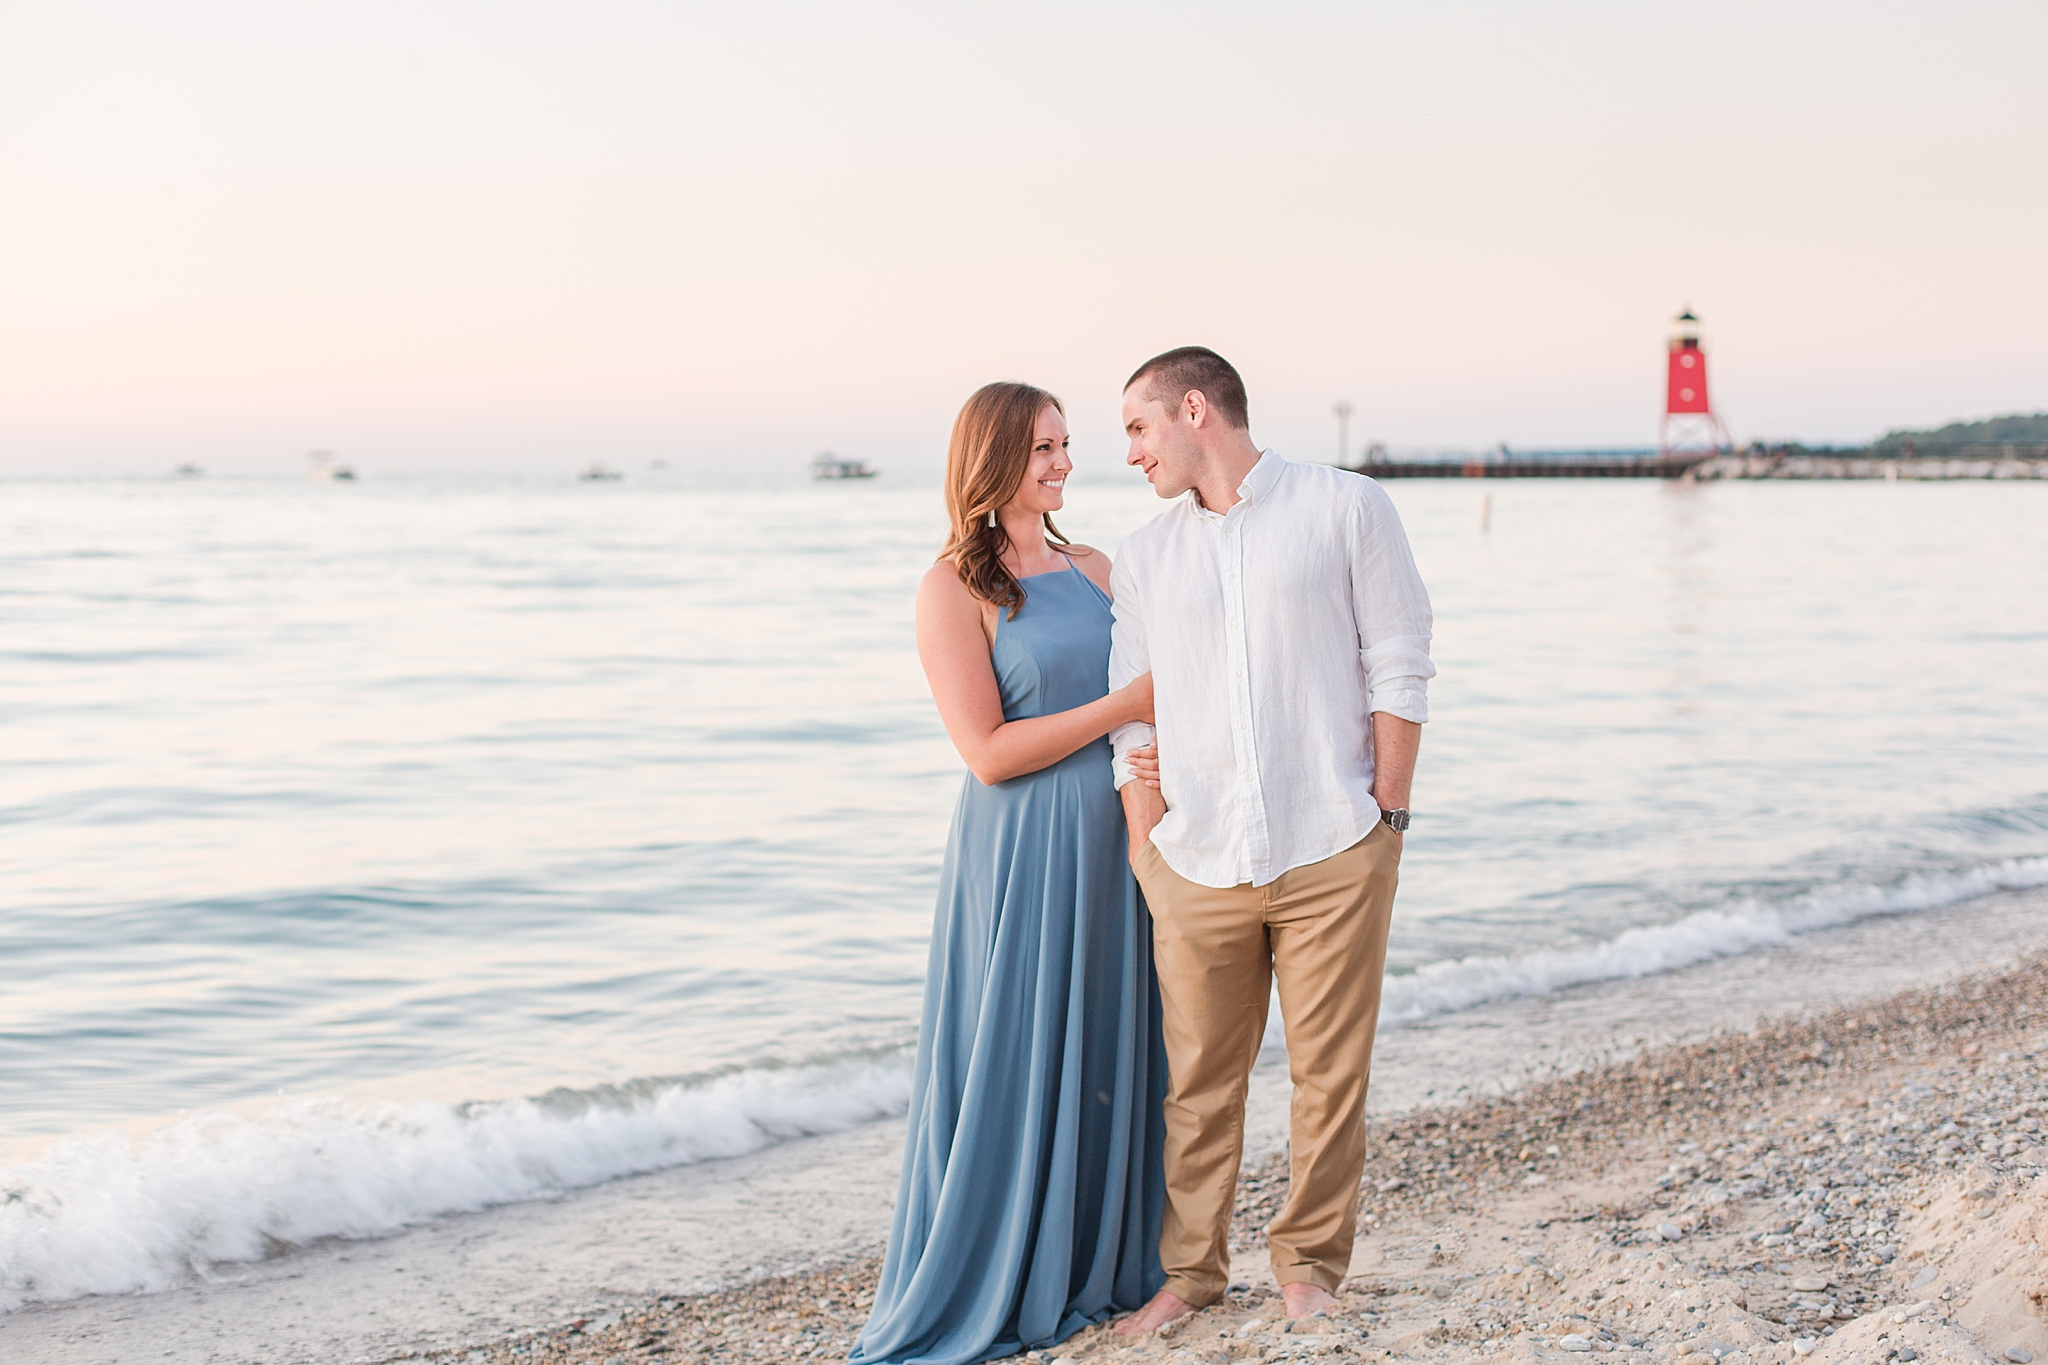 waterfront-lighthouse-engagement-photography-in-charlevoix-mi-by-courtney-carolyn-photography_0021.jpg